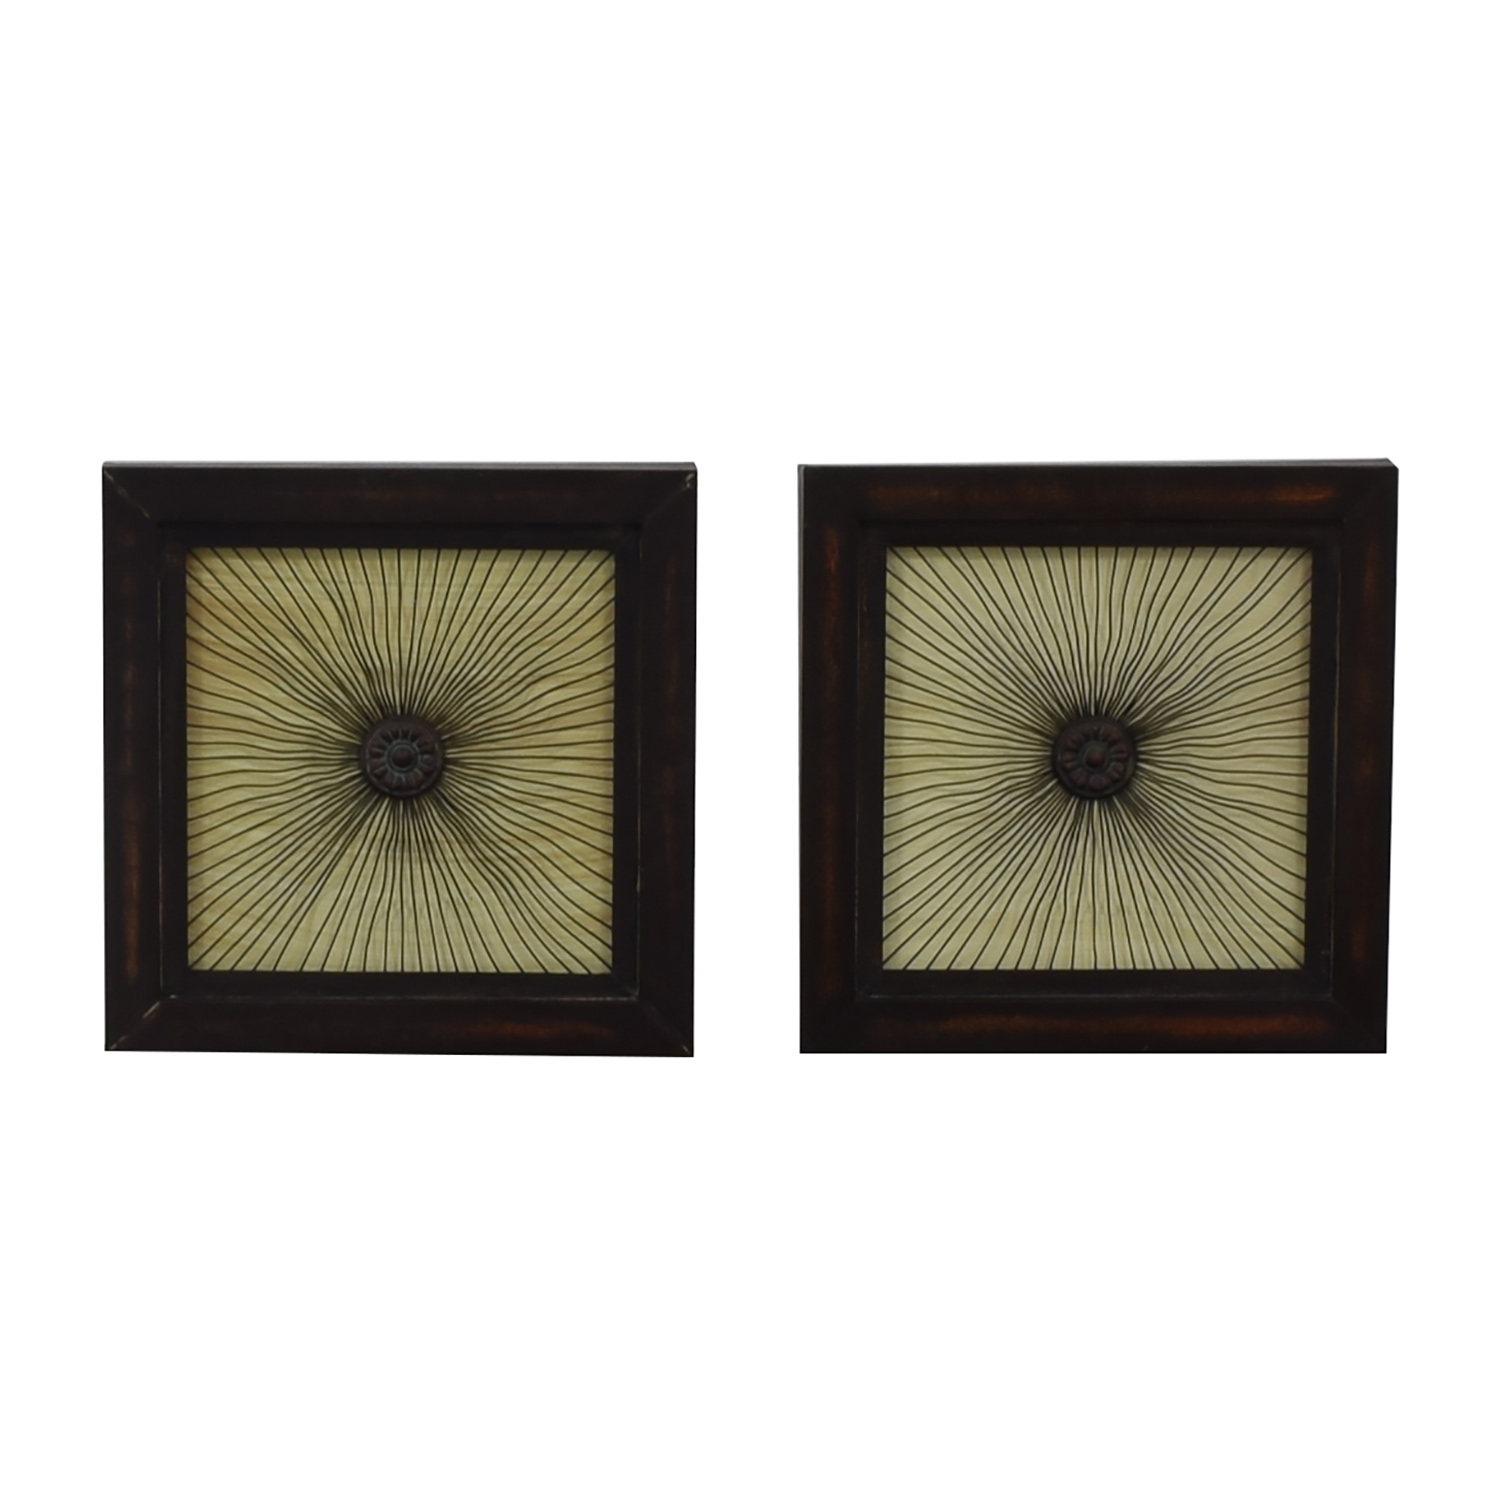 Neiman Marcus Neiman Marcus Abstract Wall Art Decor